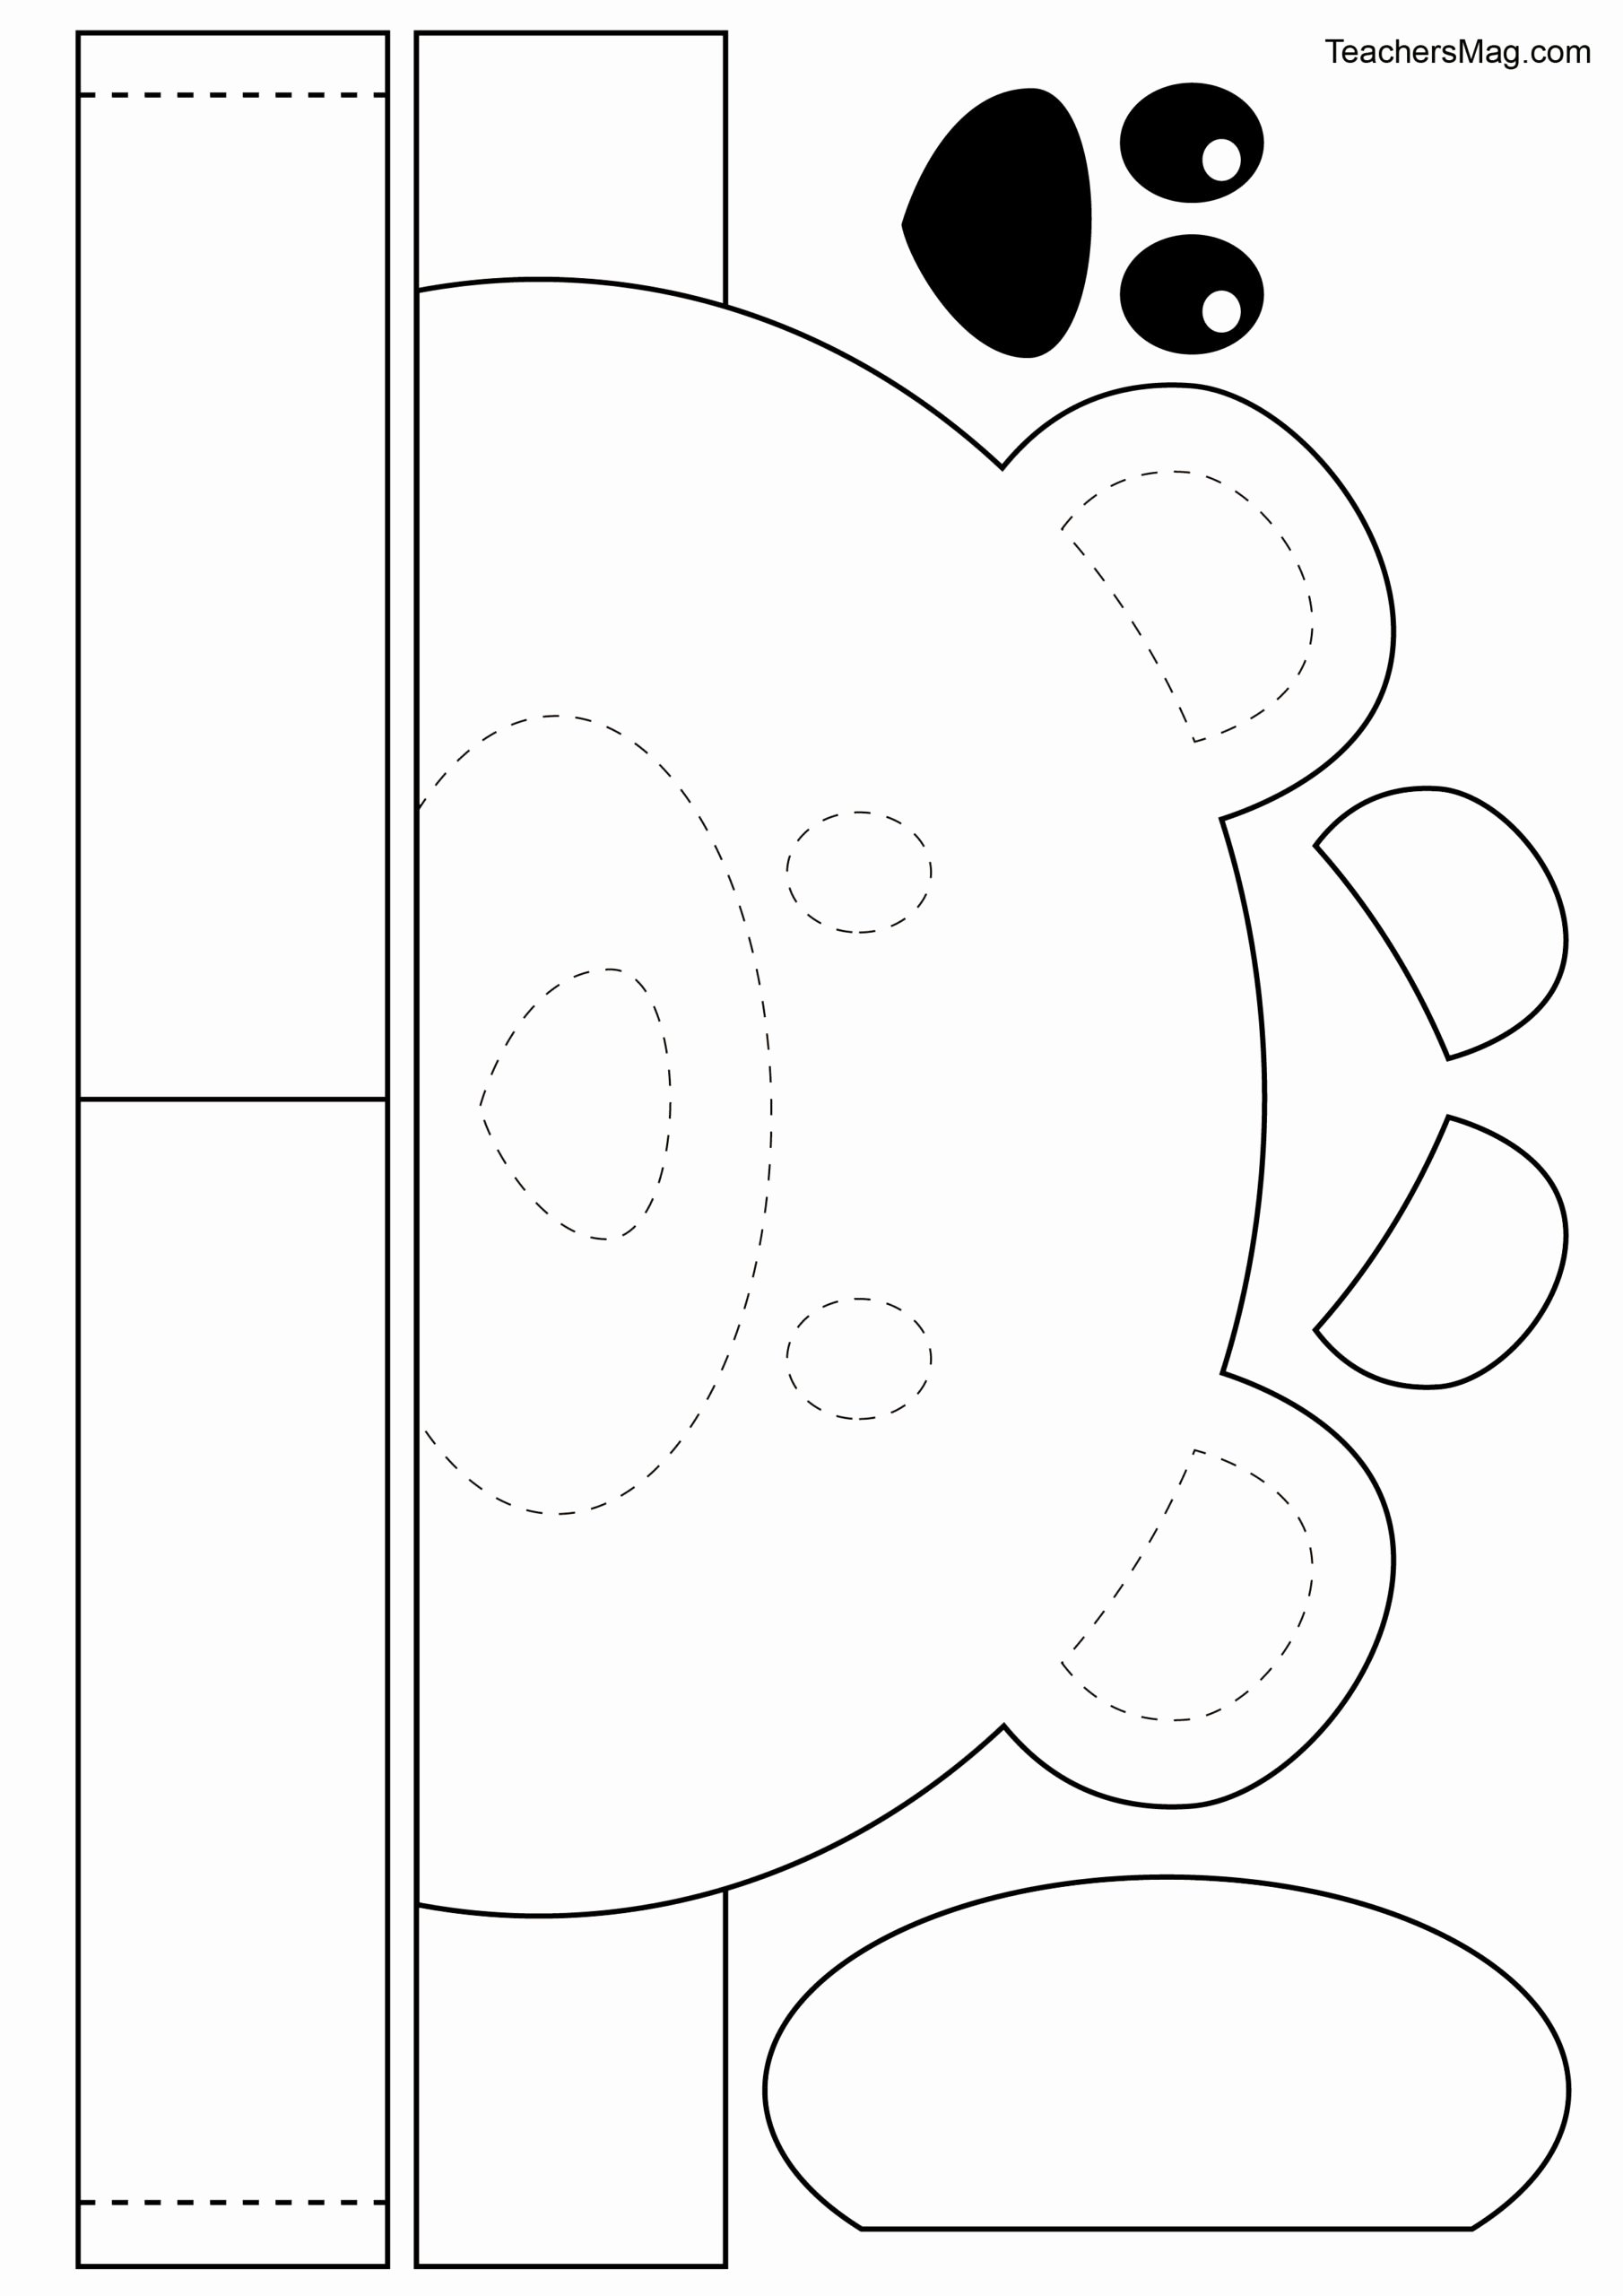 Hygiene Worksheets for Preschoolers New Free Printable Bear Crown for Kids Teachersmag Dental